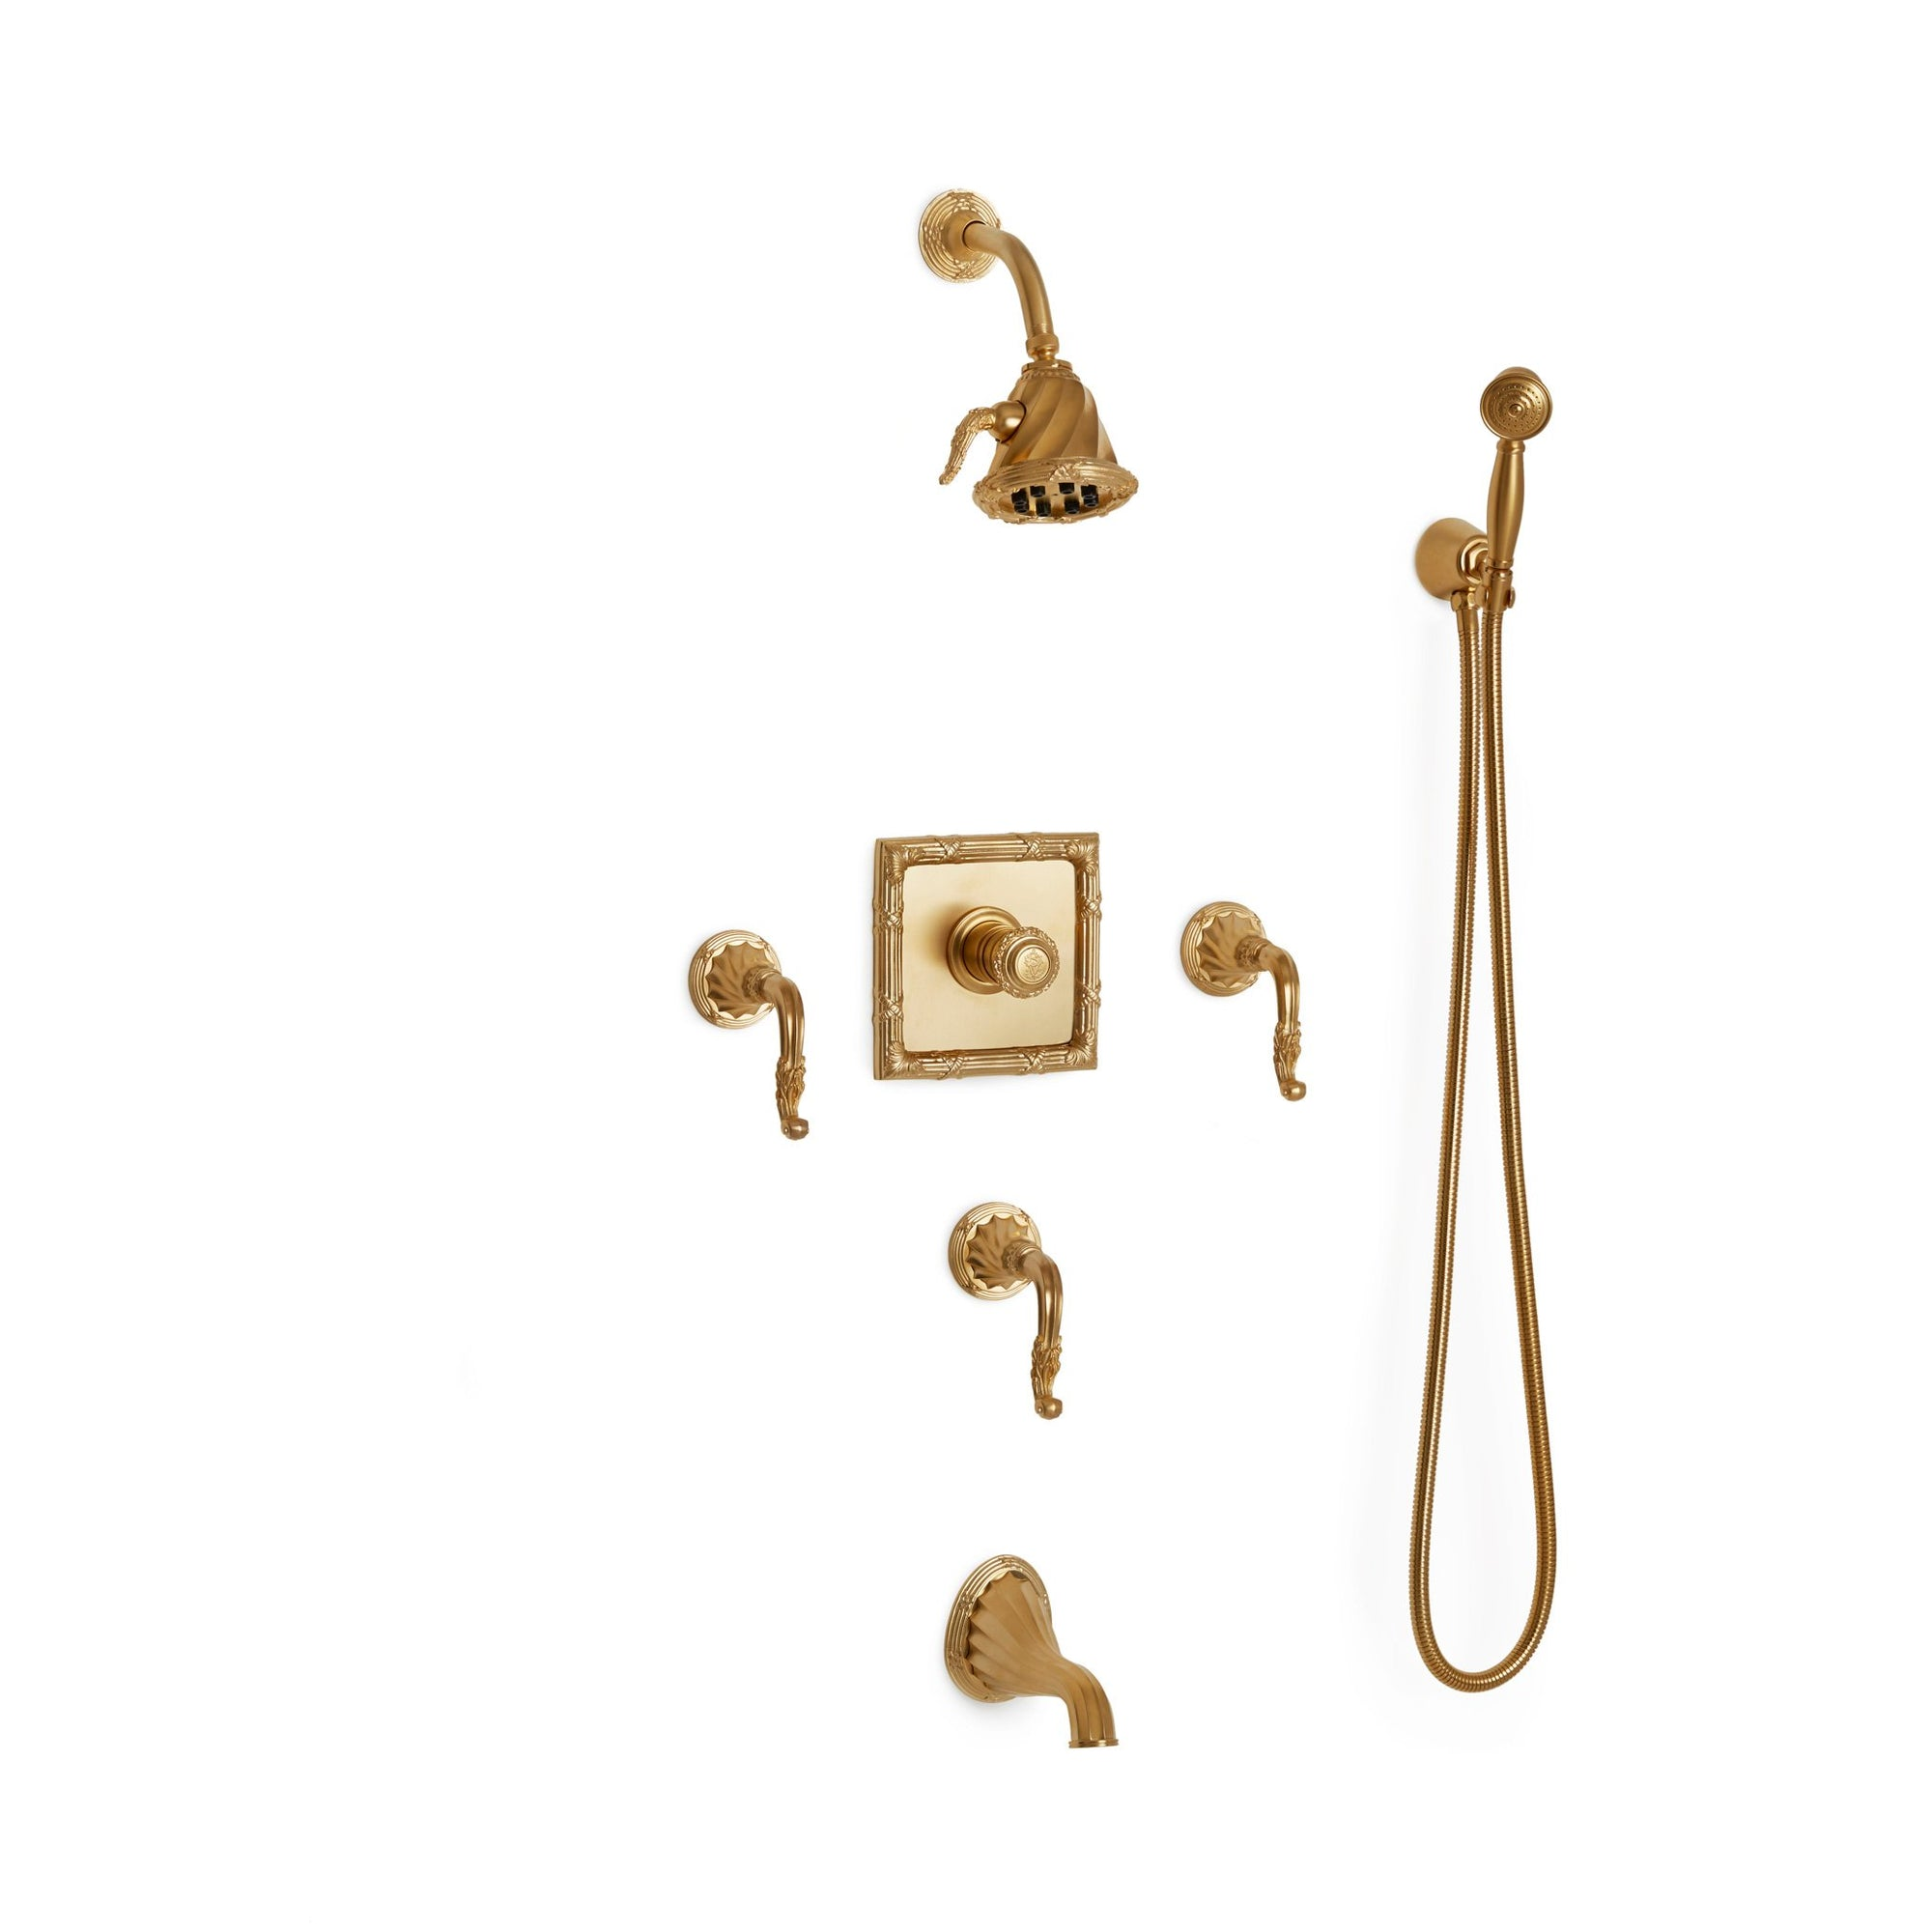 Sherle Wagner International Ribbon & Reed High Flow Thermostatic Shower and Tub System in Gold Plate metal finish